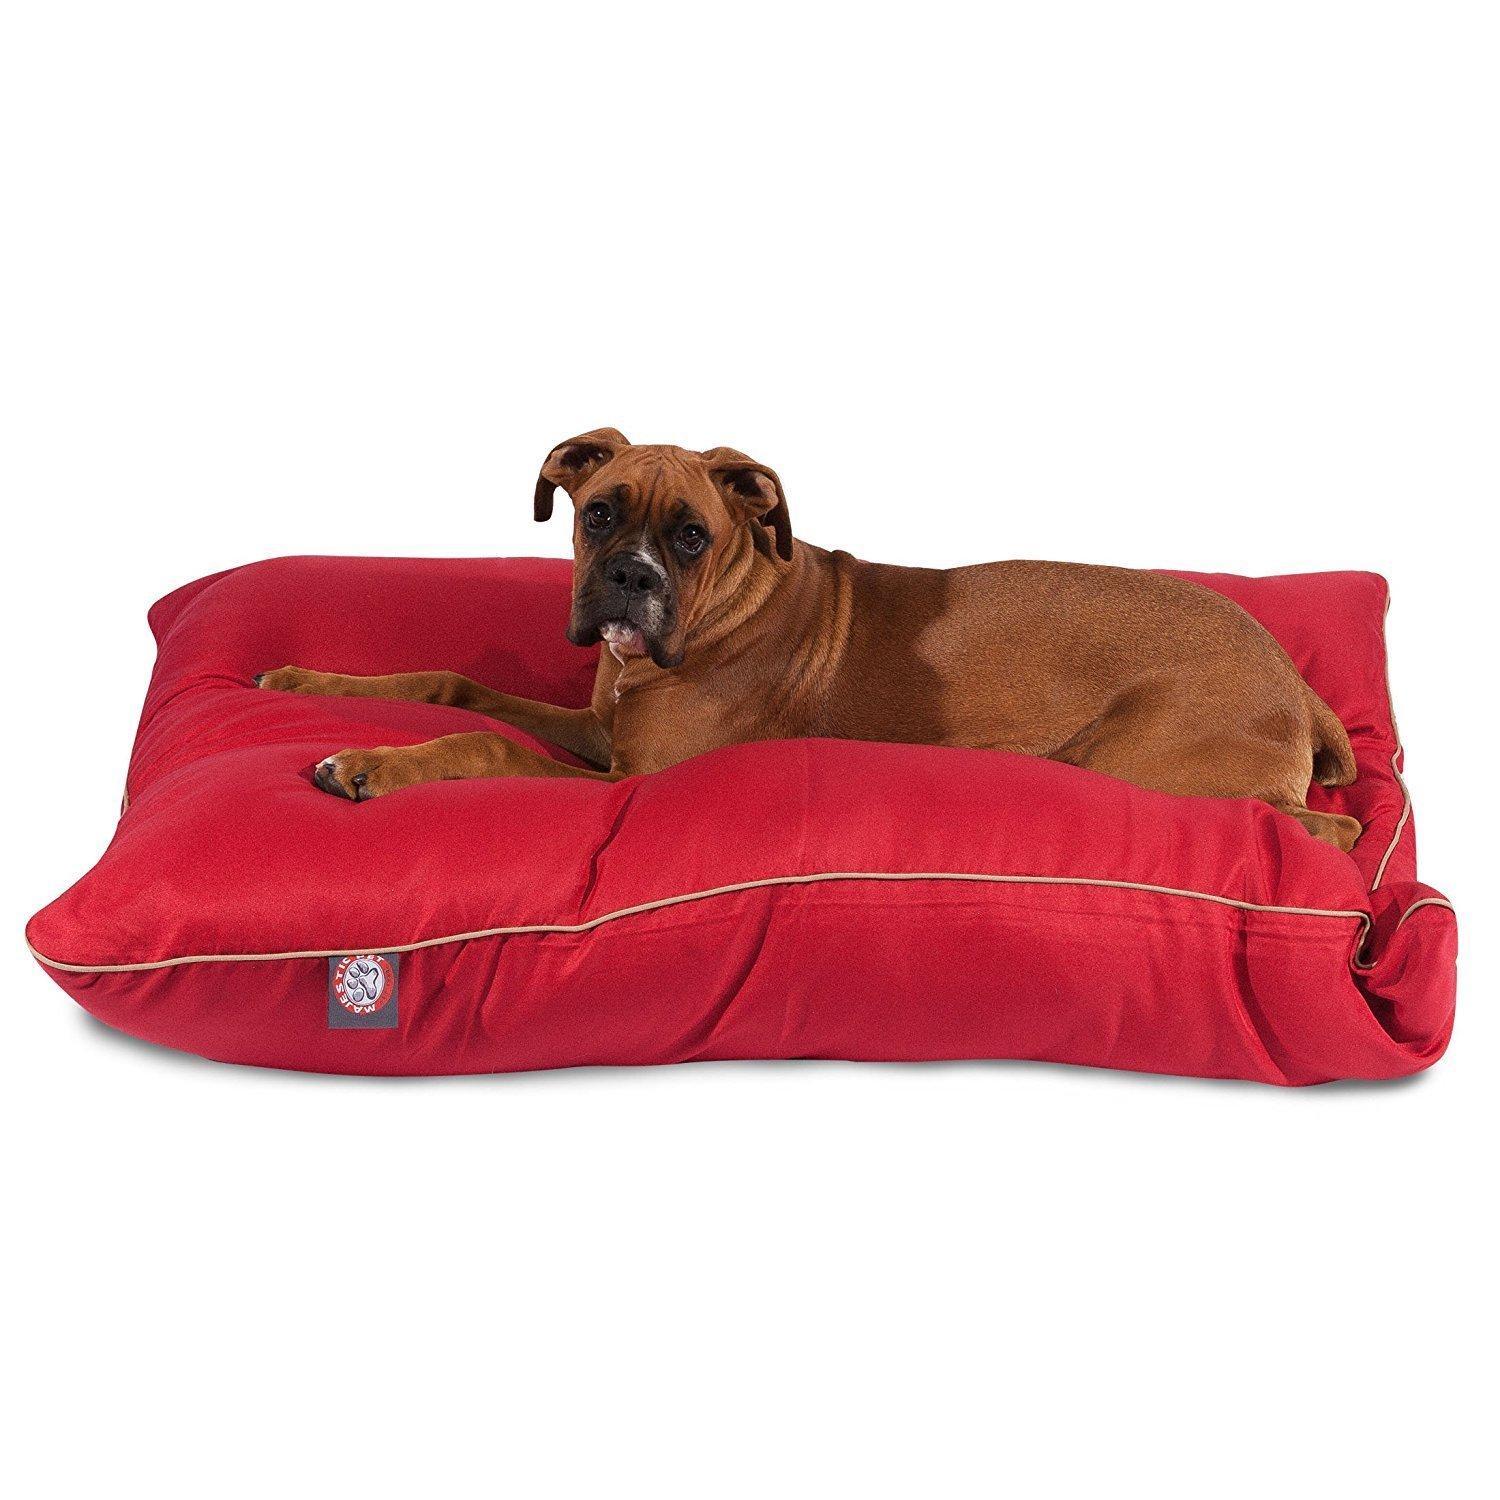 "Majestic Pet Solid Color Super Value Dog Bed Machine Washable Red Large 35"" x 46"" x 7"""